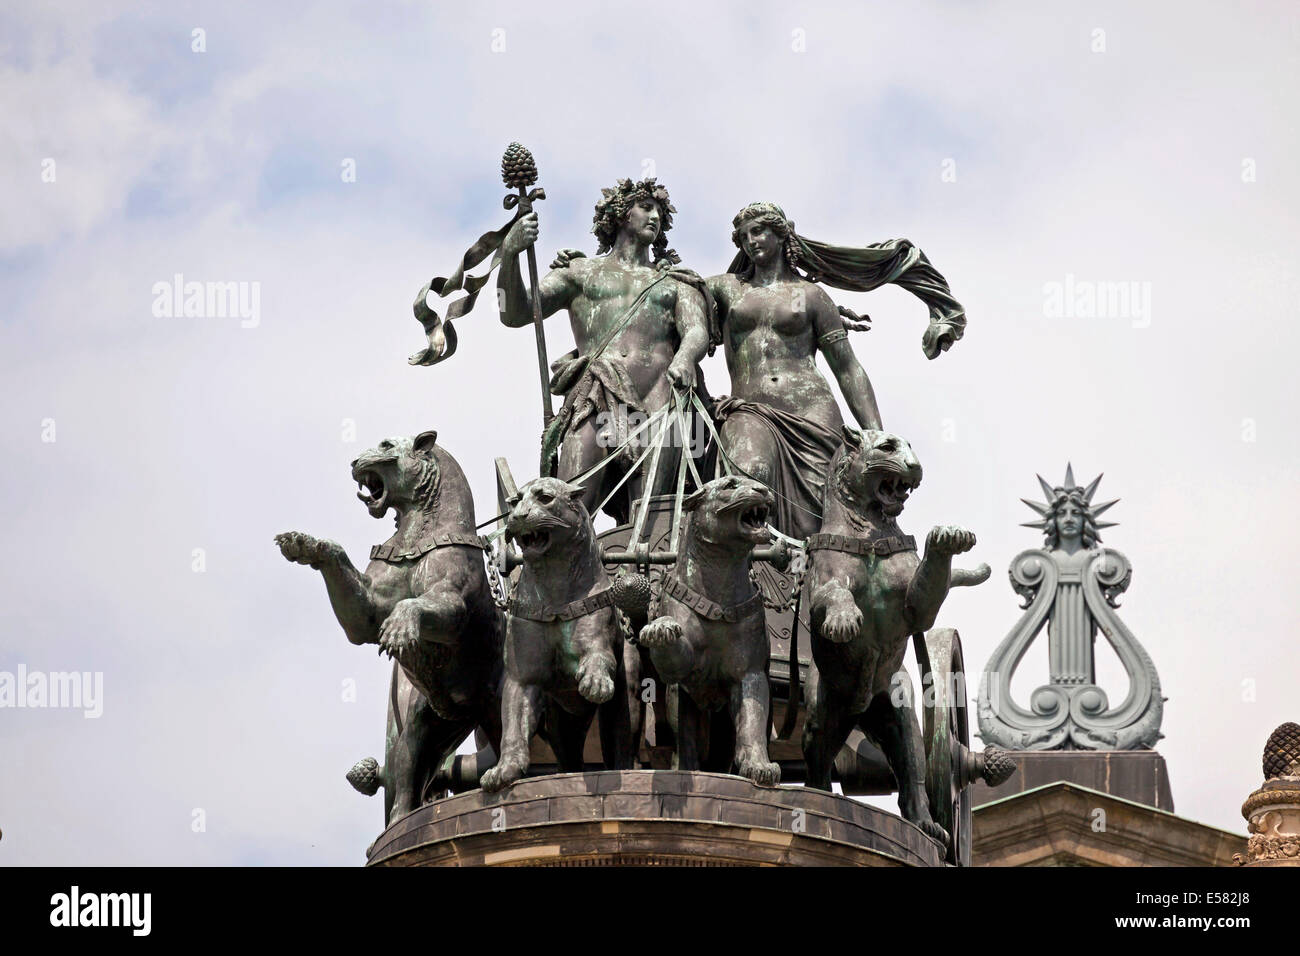 Panther quadriga with Dionysos and Ariadne by Johannes Schilling on the Semperoper, Dresden, Saxony, Germany Stock Photo